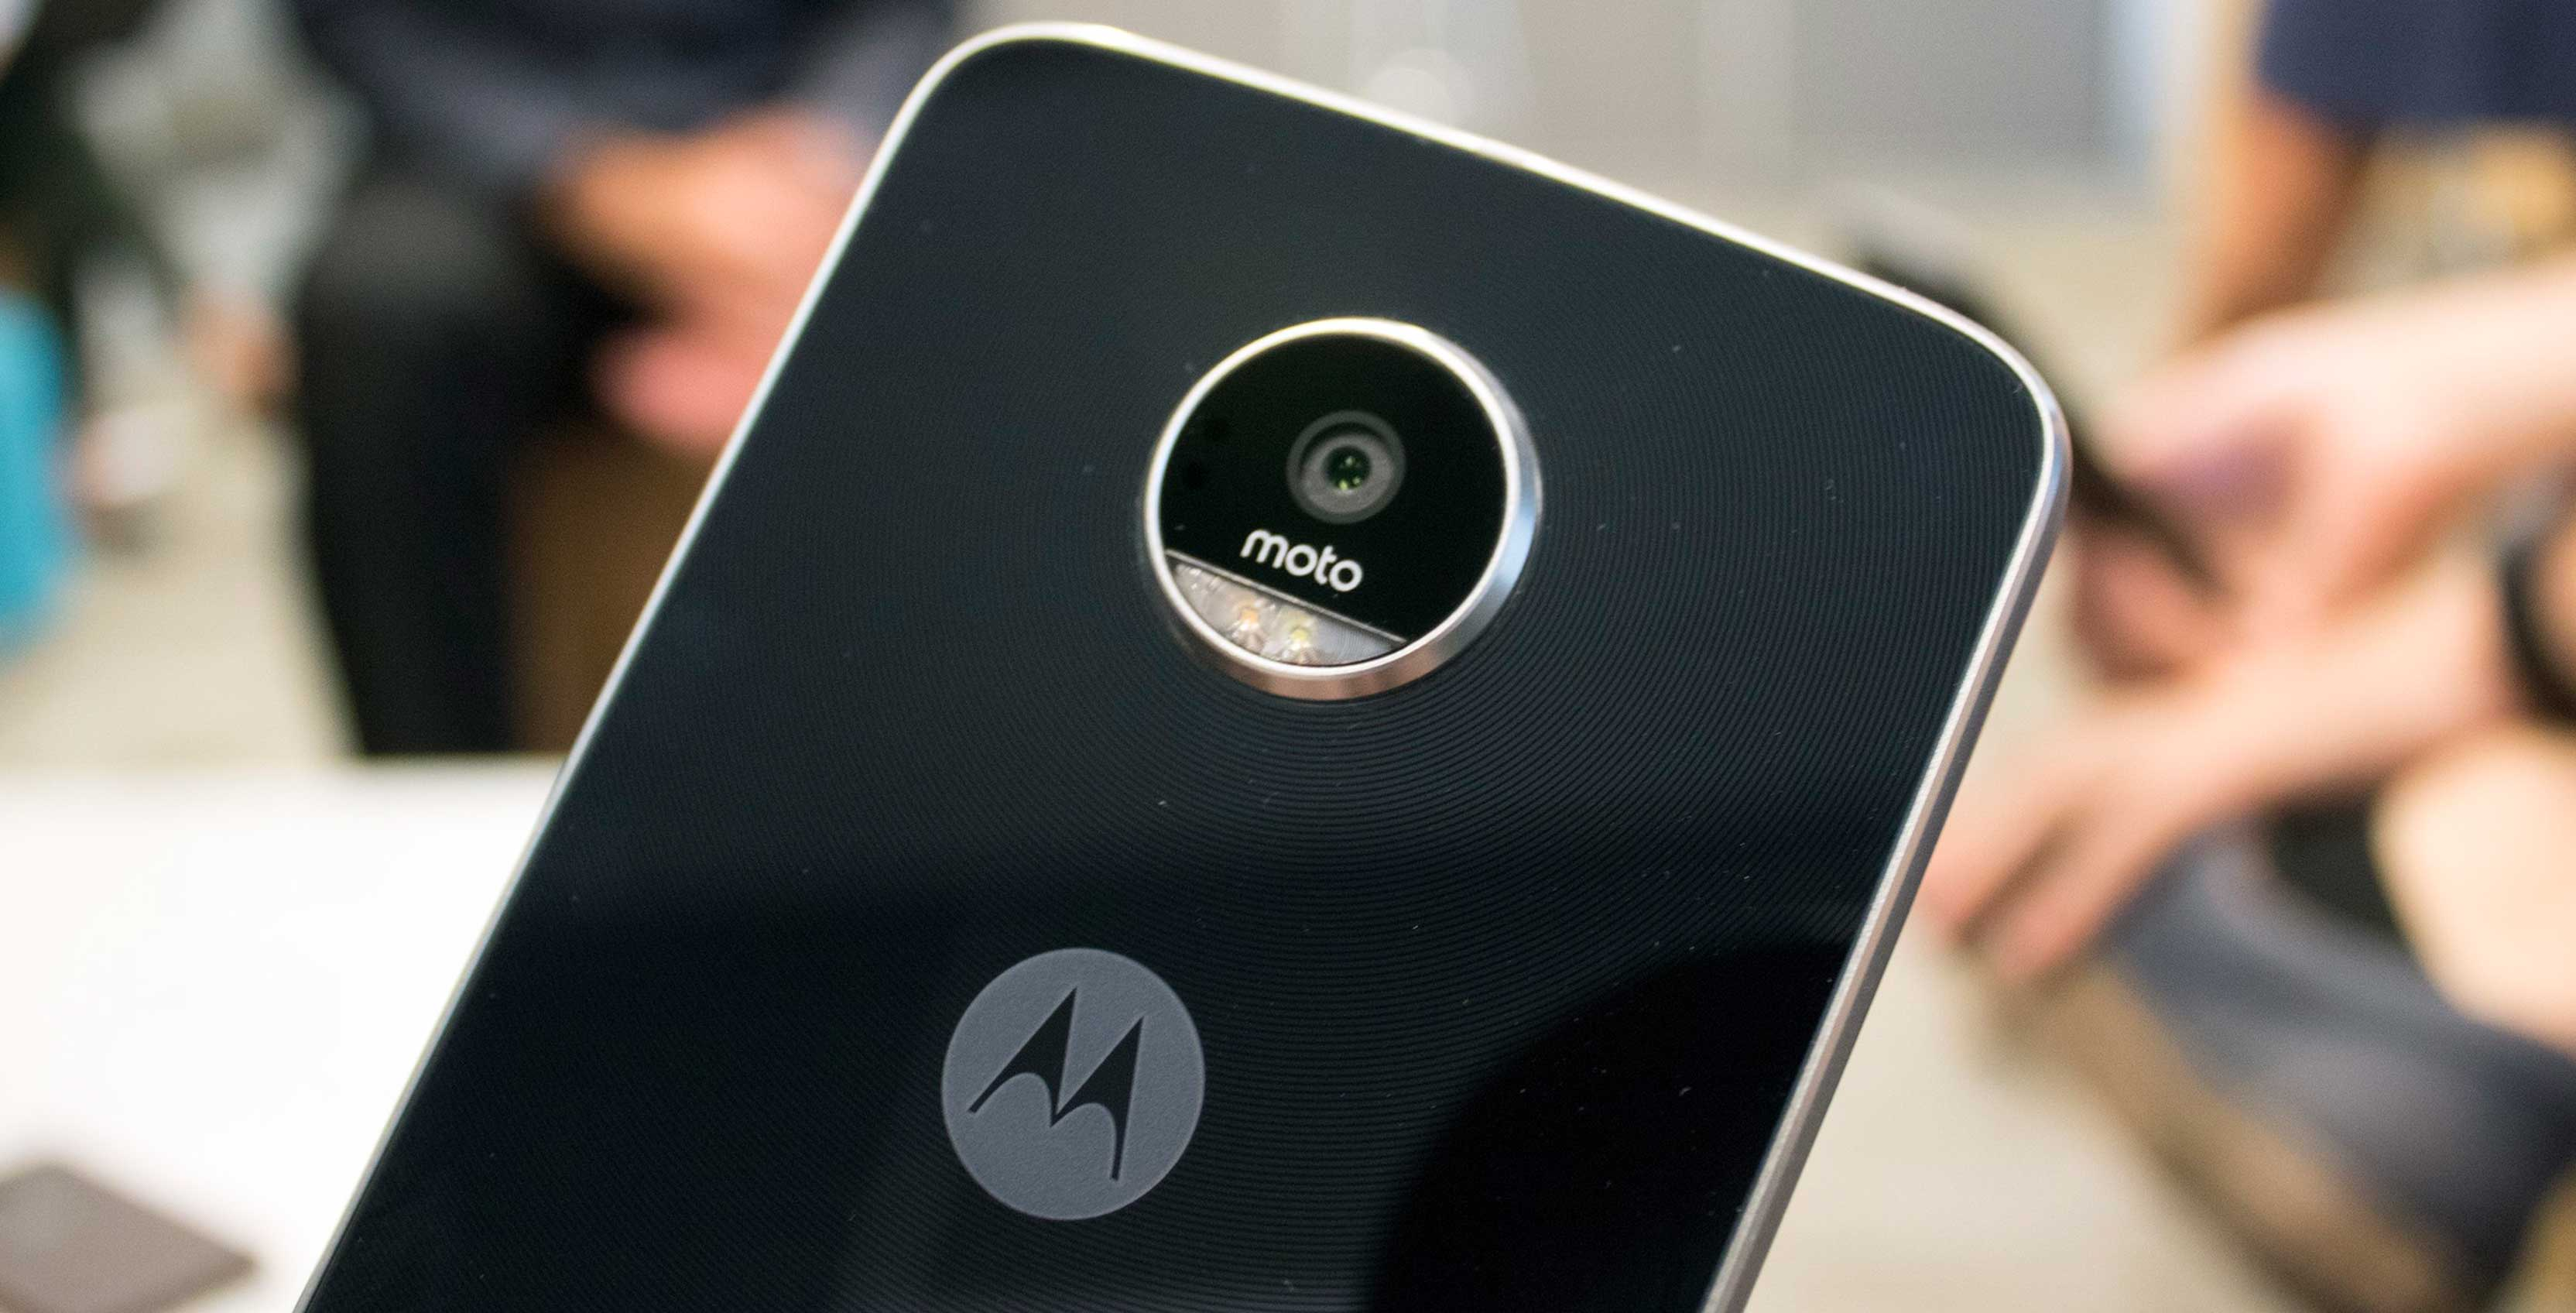 Motorola logo on phone